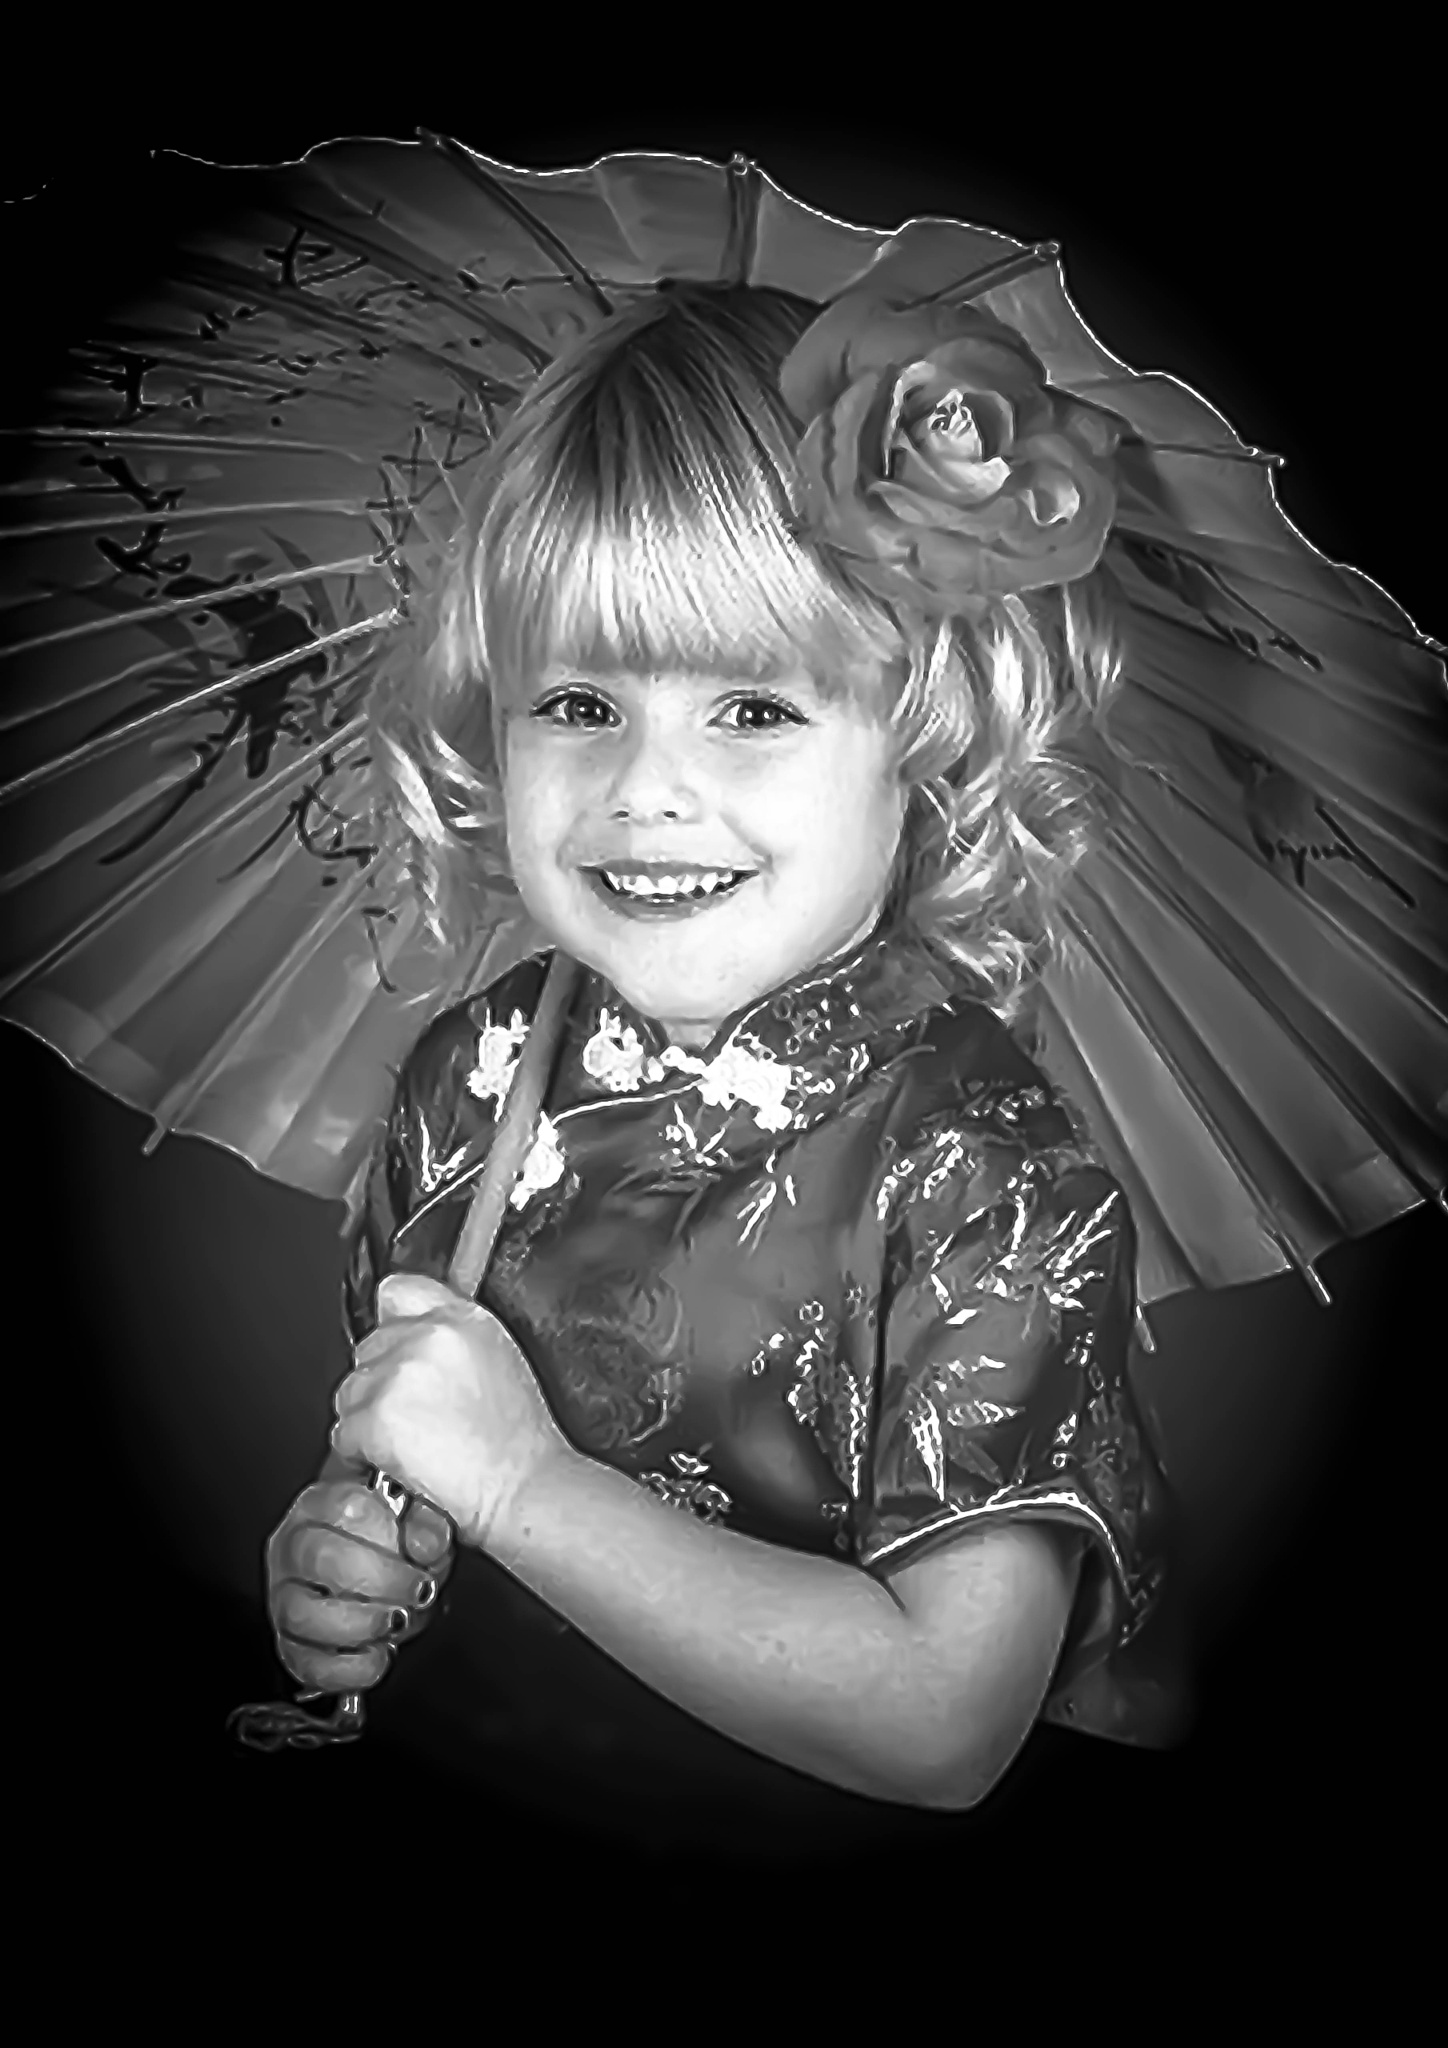 Little girl and her umbrella by ilseBodewes